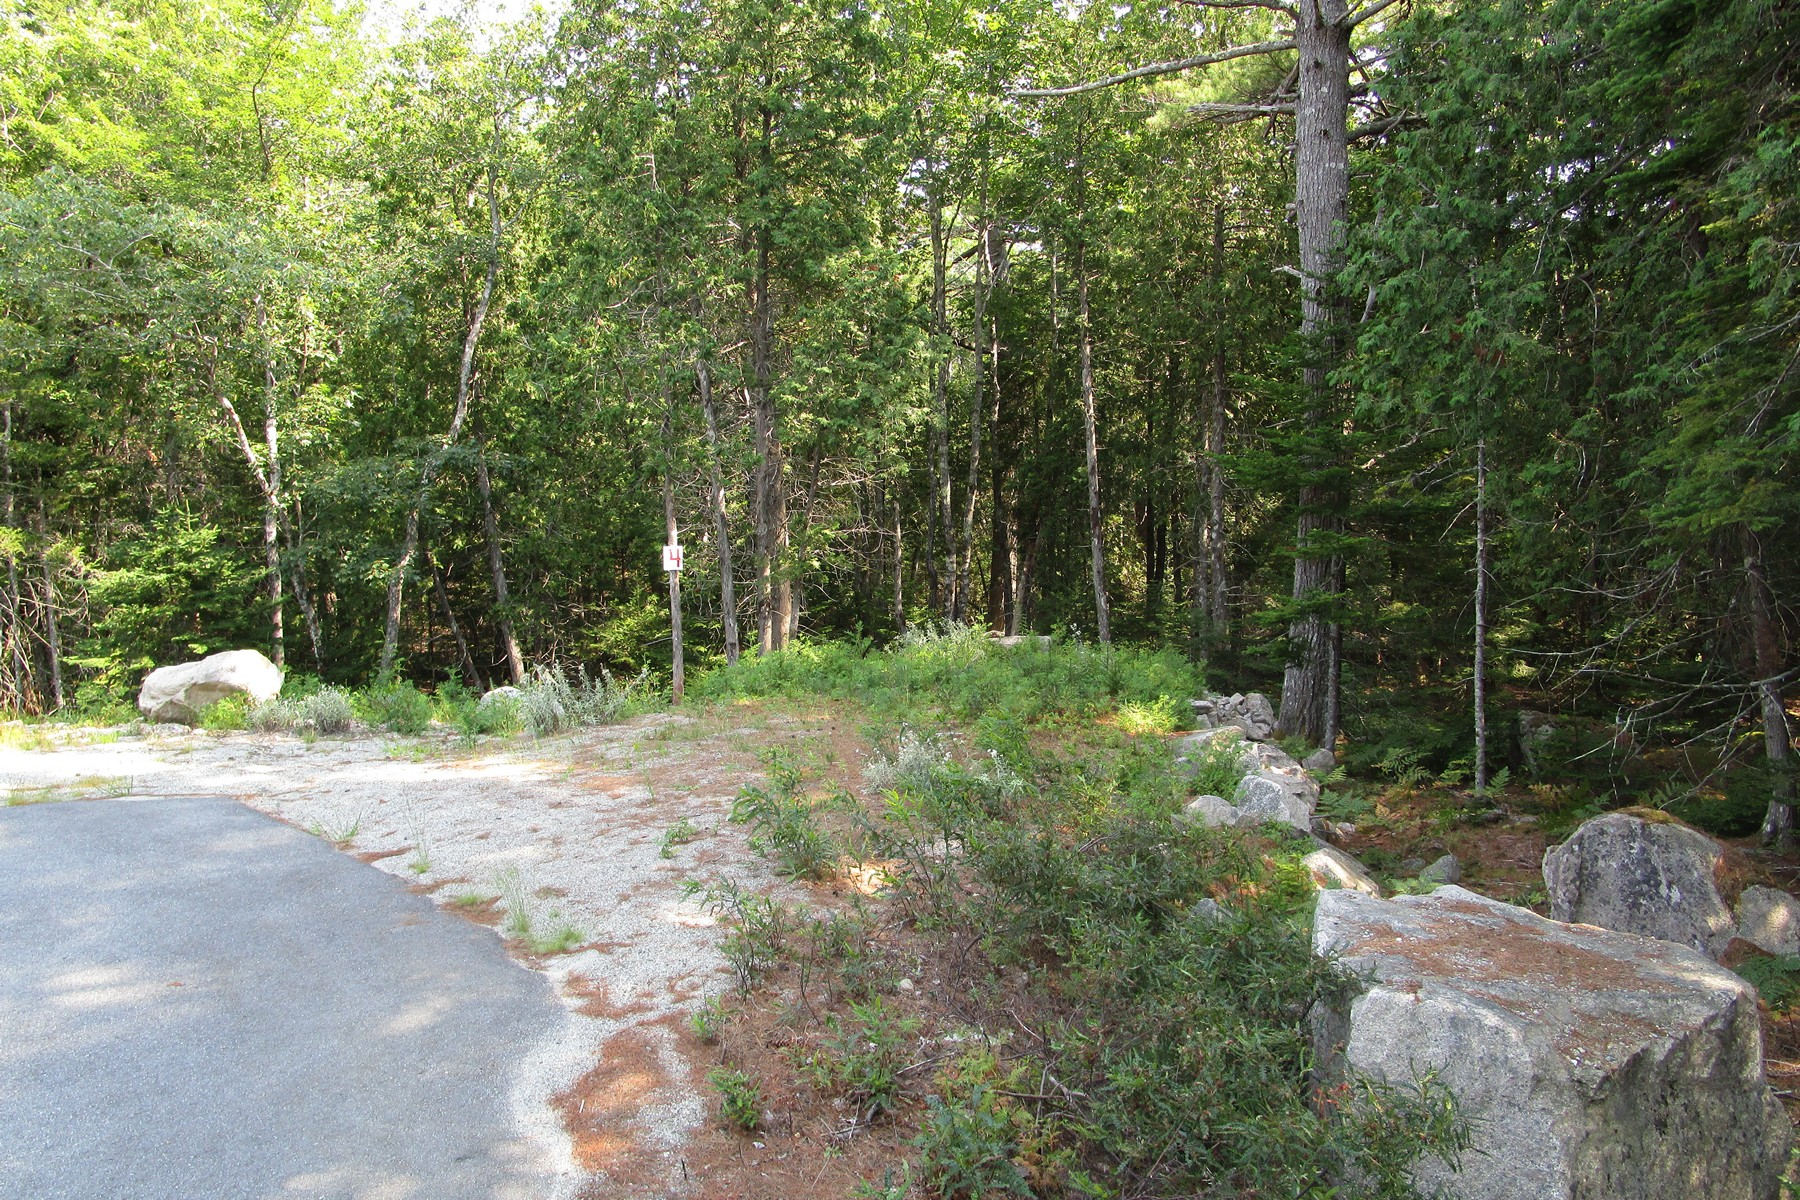 Terreno per Vendita alle ore Echo Woods Road Lot 4 Lot 4 Echo Woods Road Mount Desert, Maine, 04660 Stati Uniti